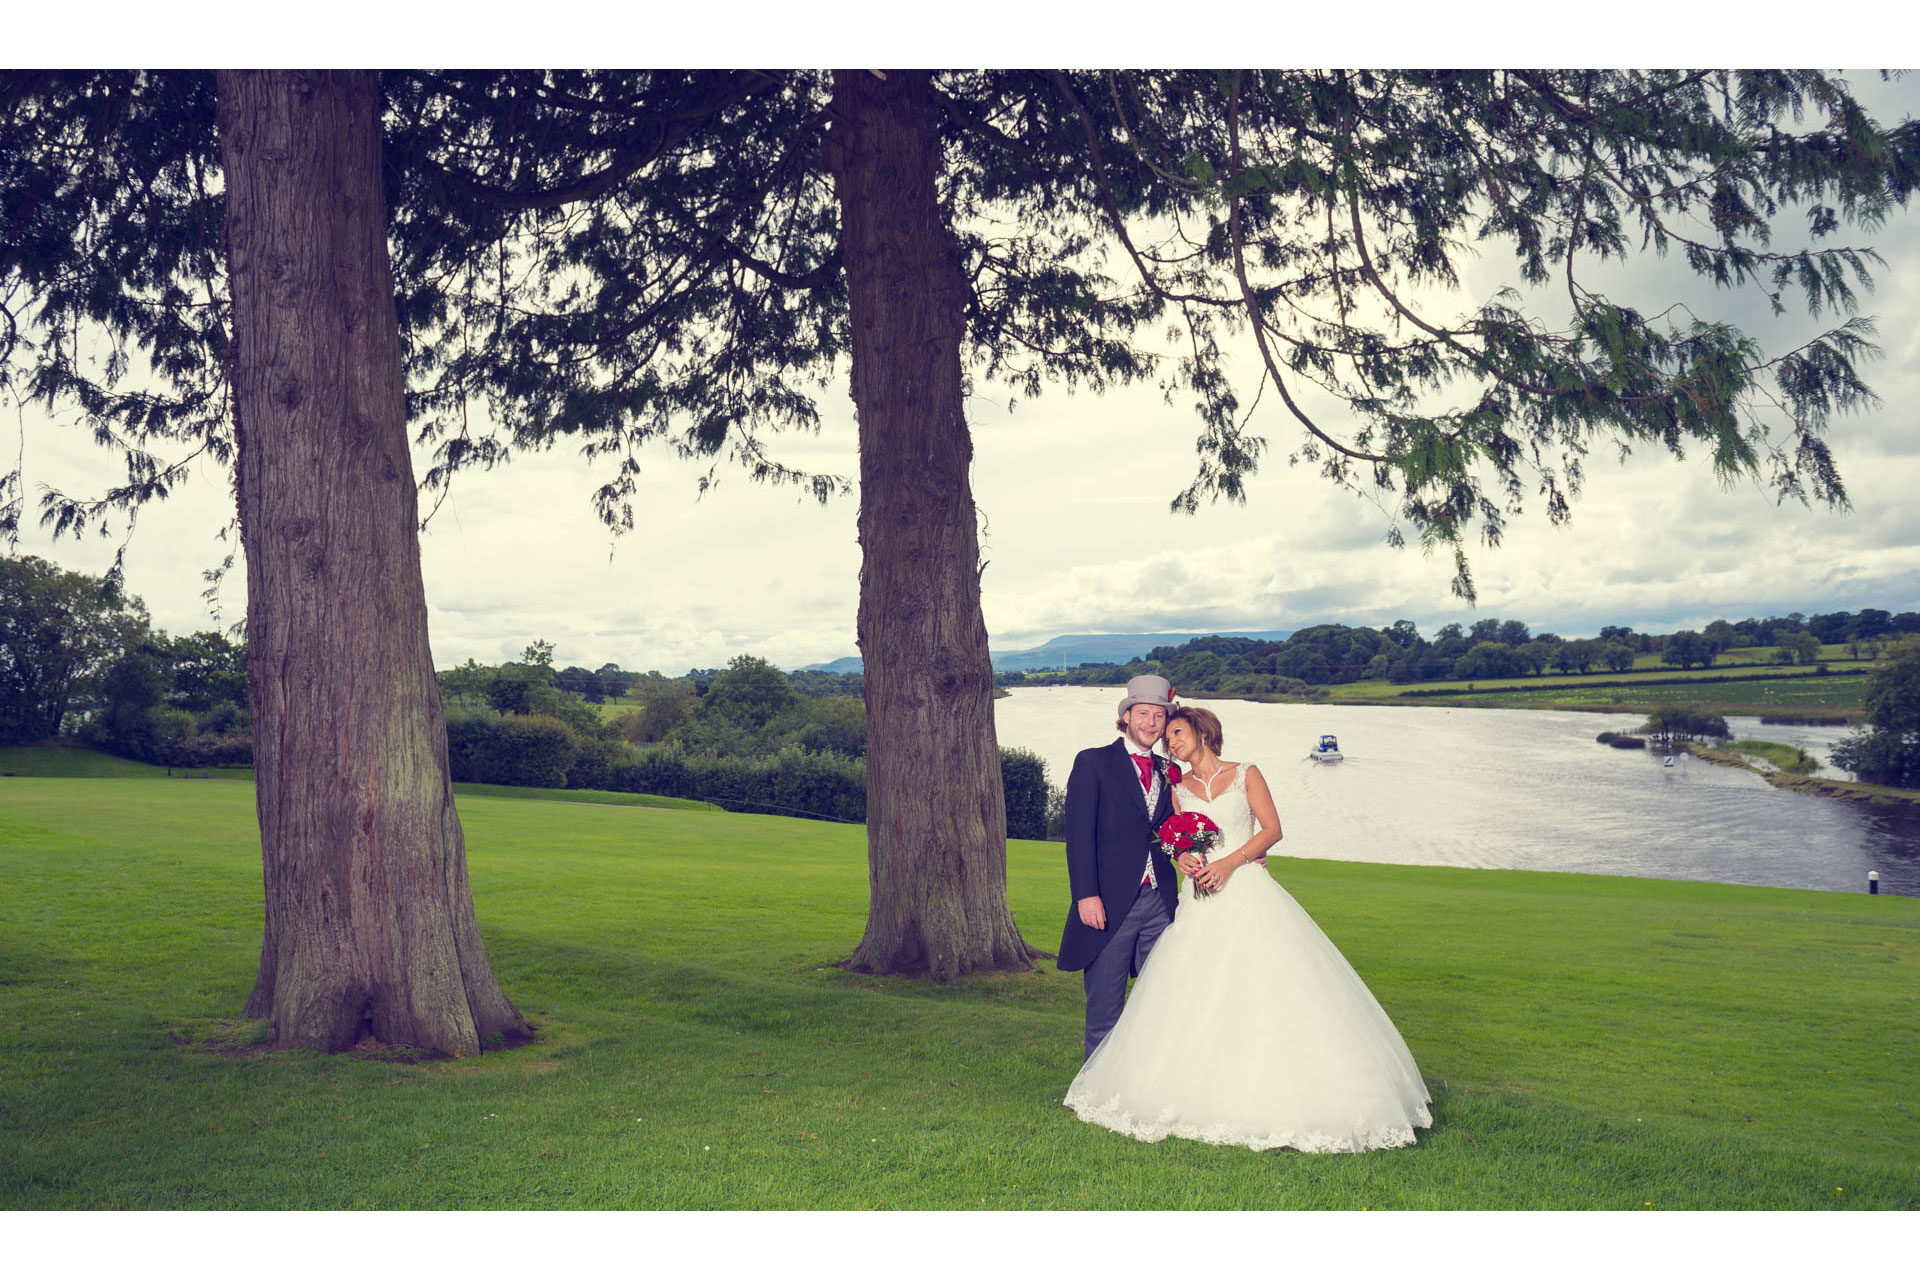 Photo of Deniz and Stevie on their wedding day, captured at Killyhevlin Hotel, Enniskillen, Co. Fermanagh, Northern Ireland.